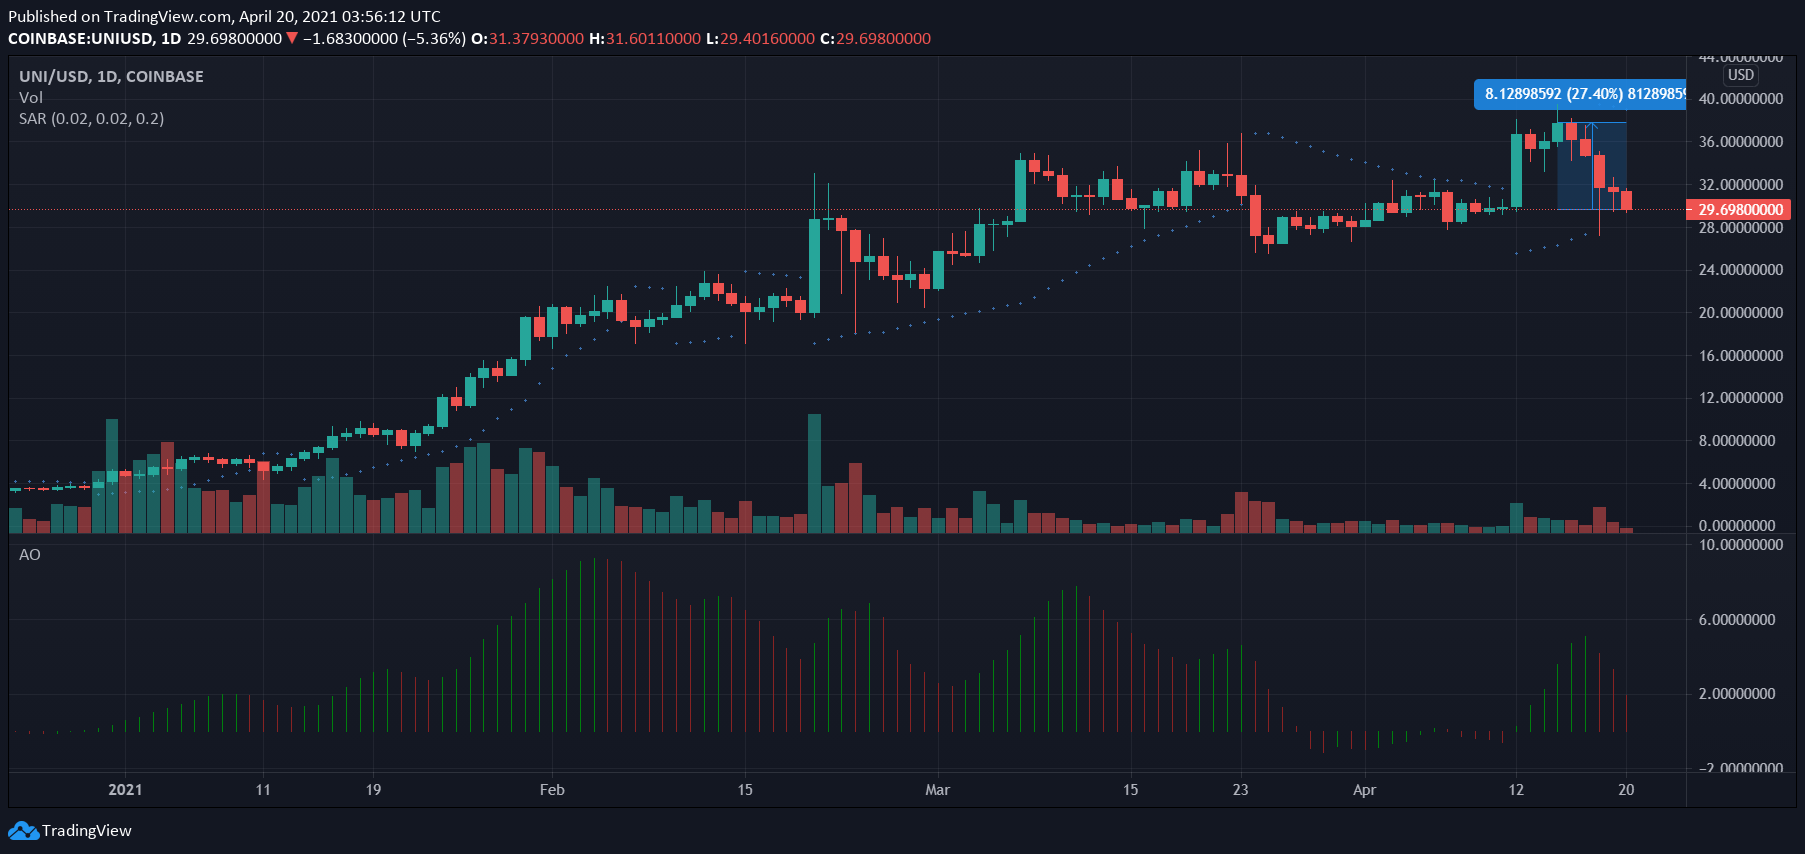 Uniswap, XRP, Binance Coin, THETA Price Analysis: 20 April